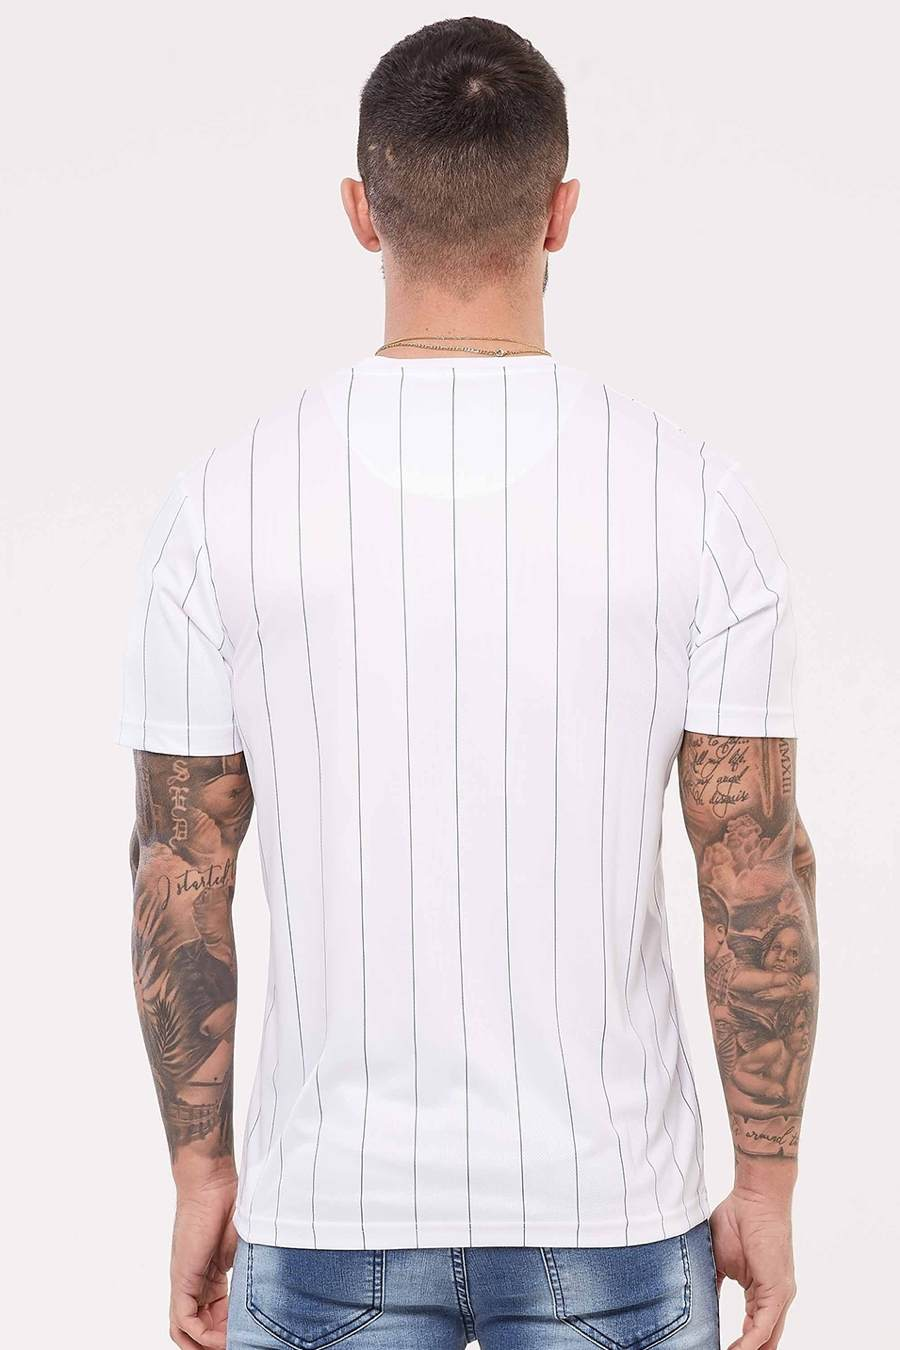 Good For Nothing Pinstripe Nothing Jersey - White - 3